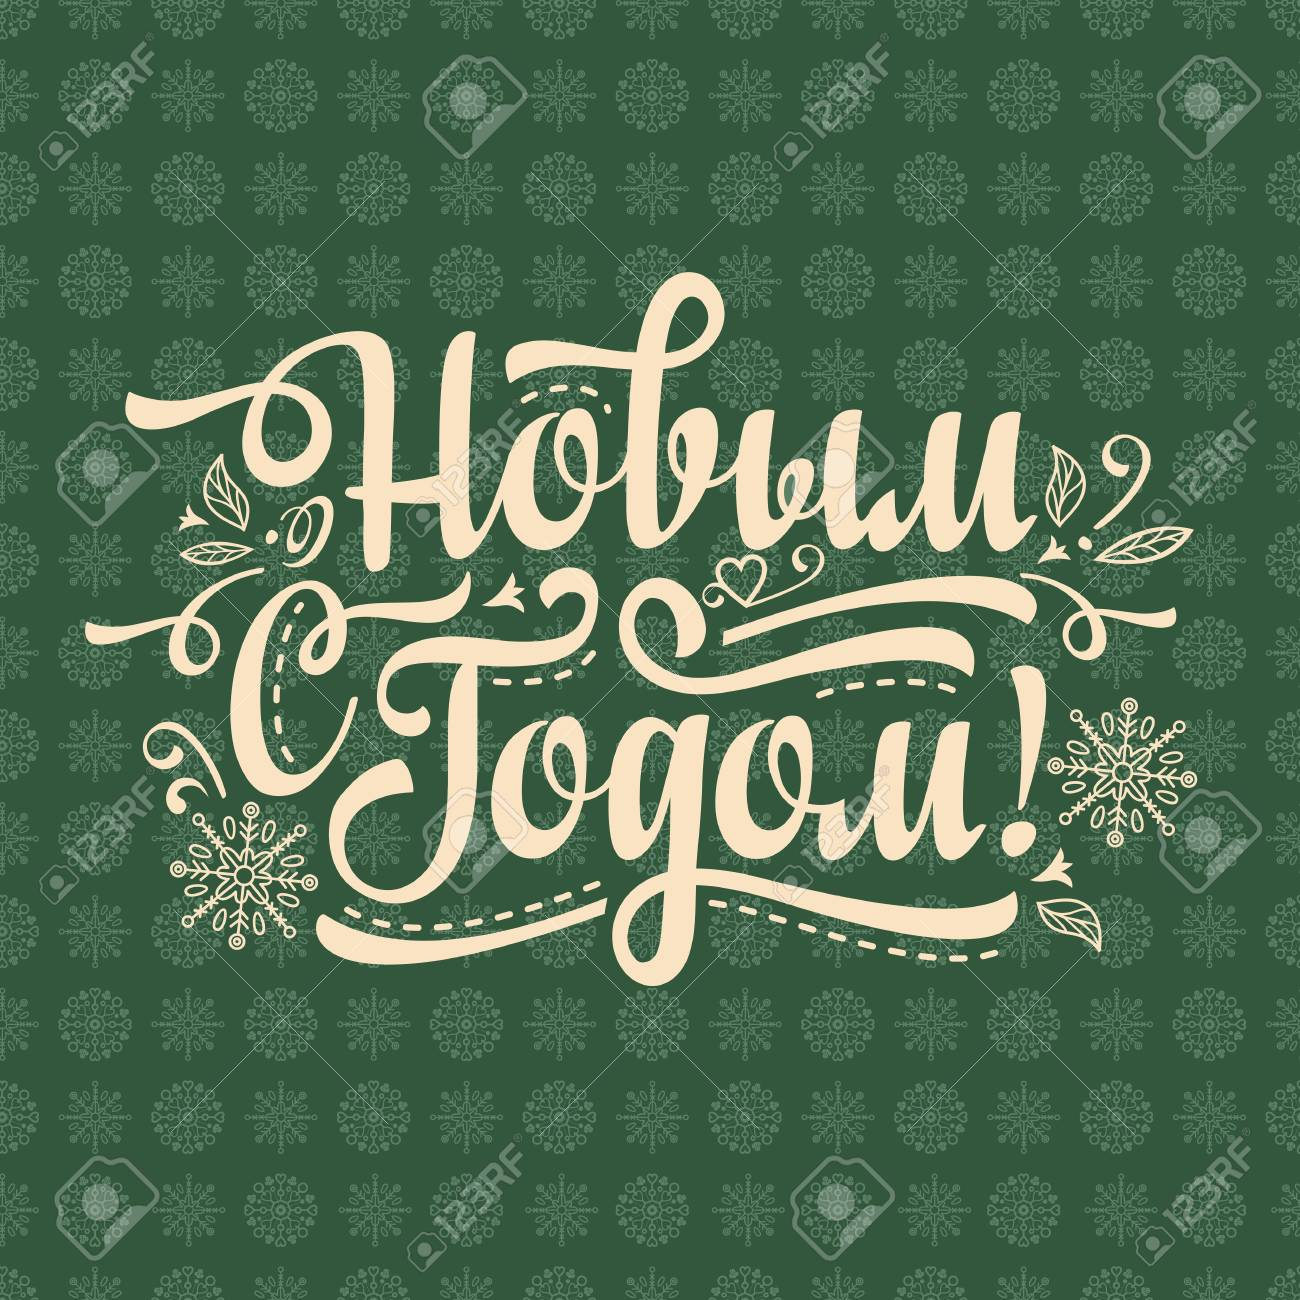 New year card holiday background phrase in russian language new year card holiday background phrase in russian language warm wishes for happy m4hsunfo